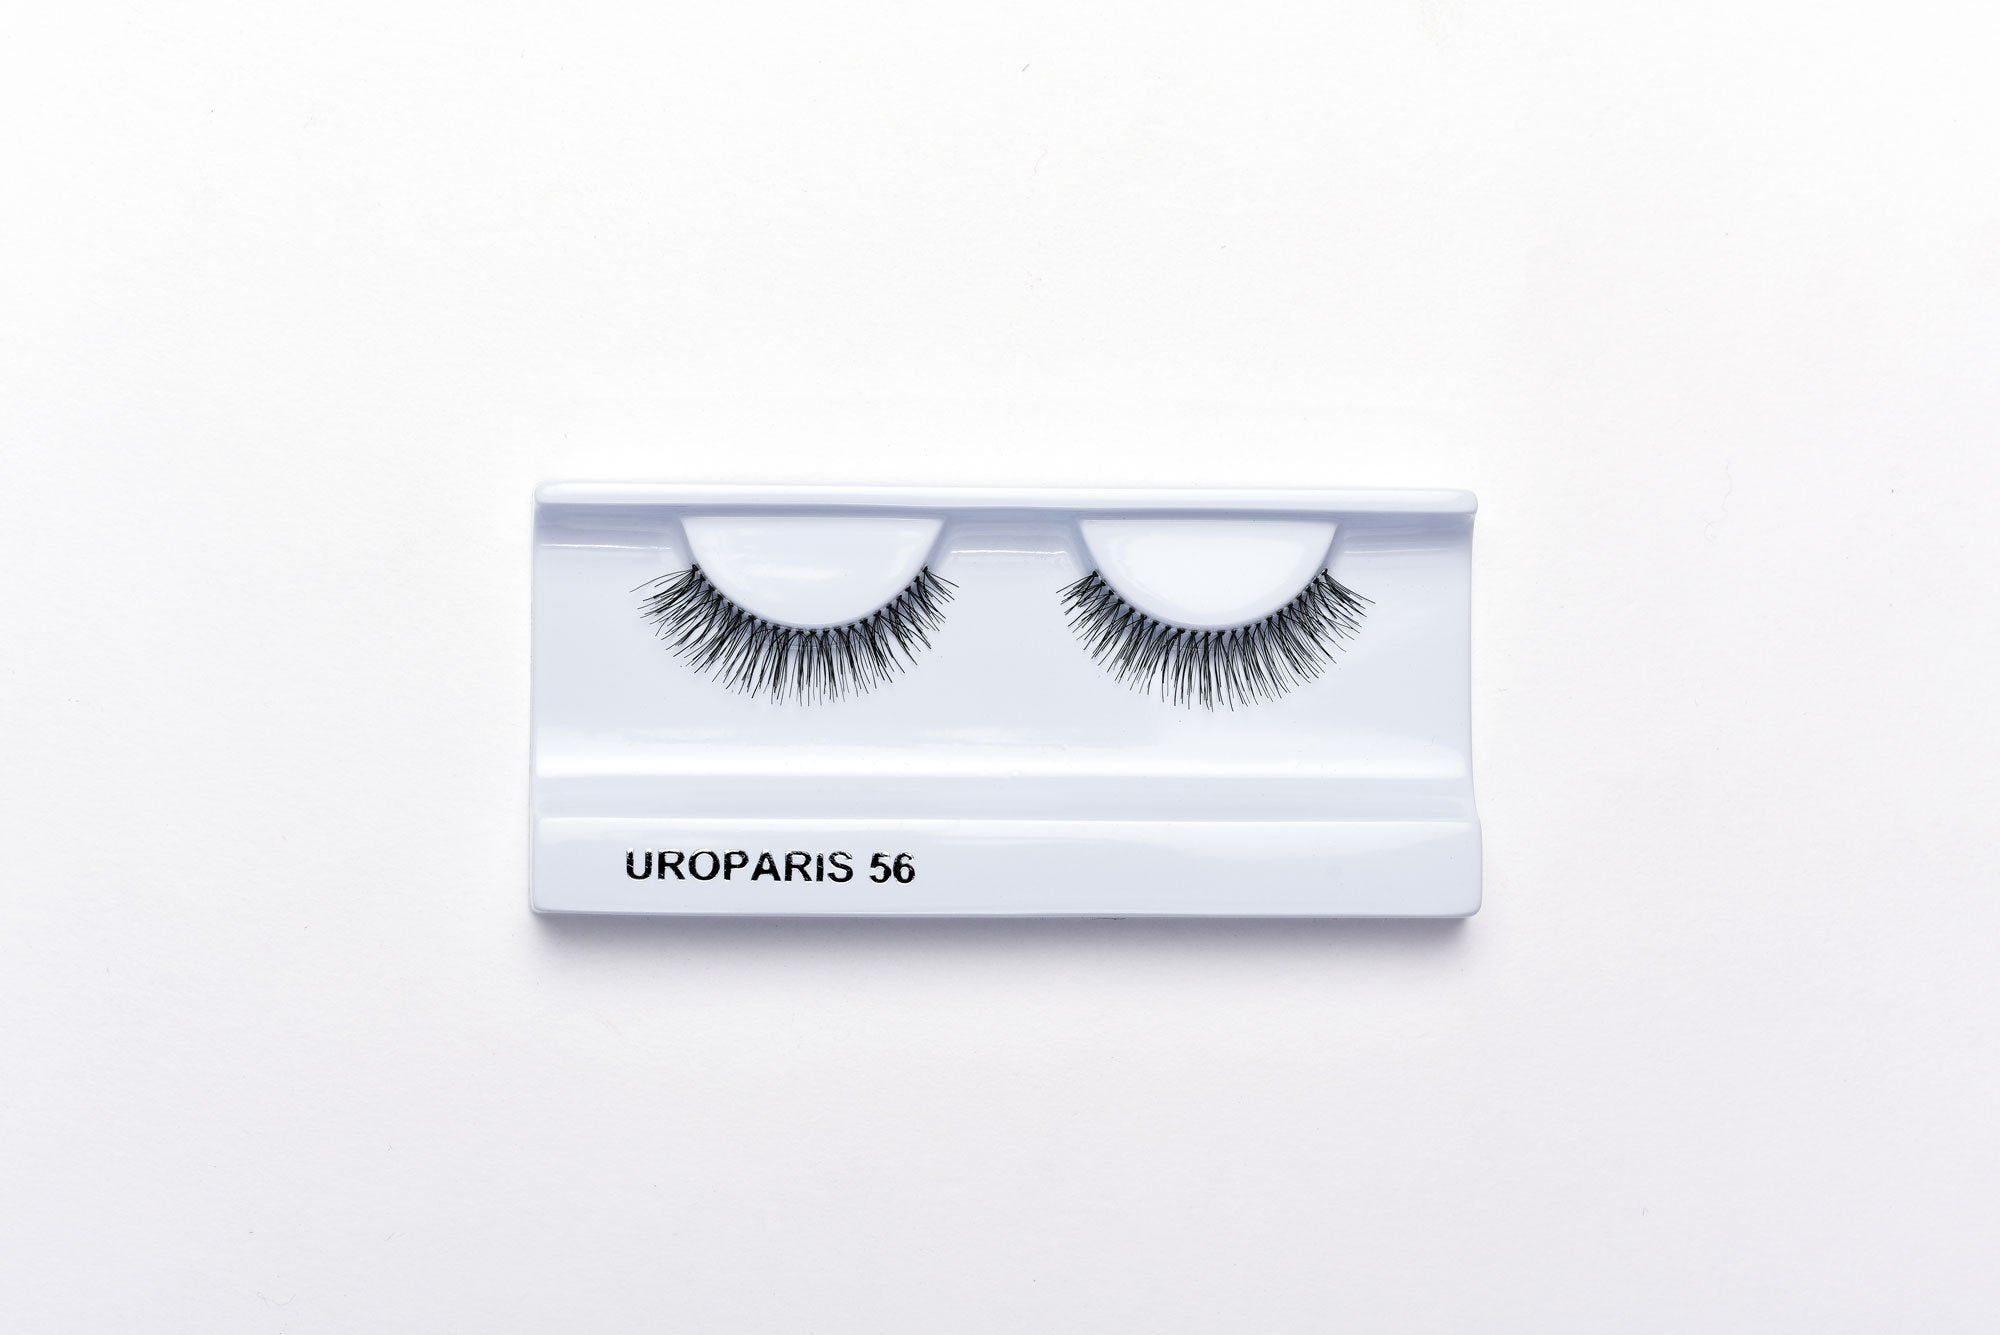 Uroparis Eyelashes 56